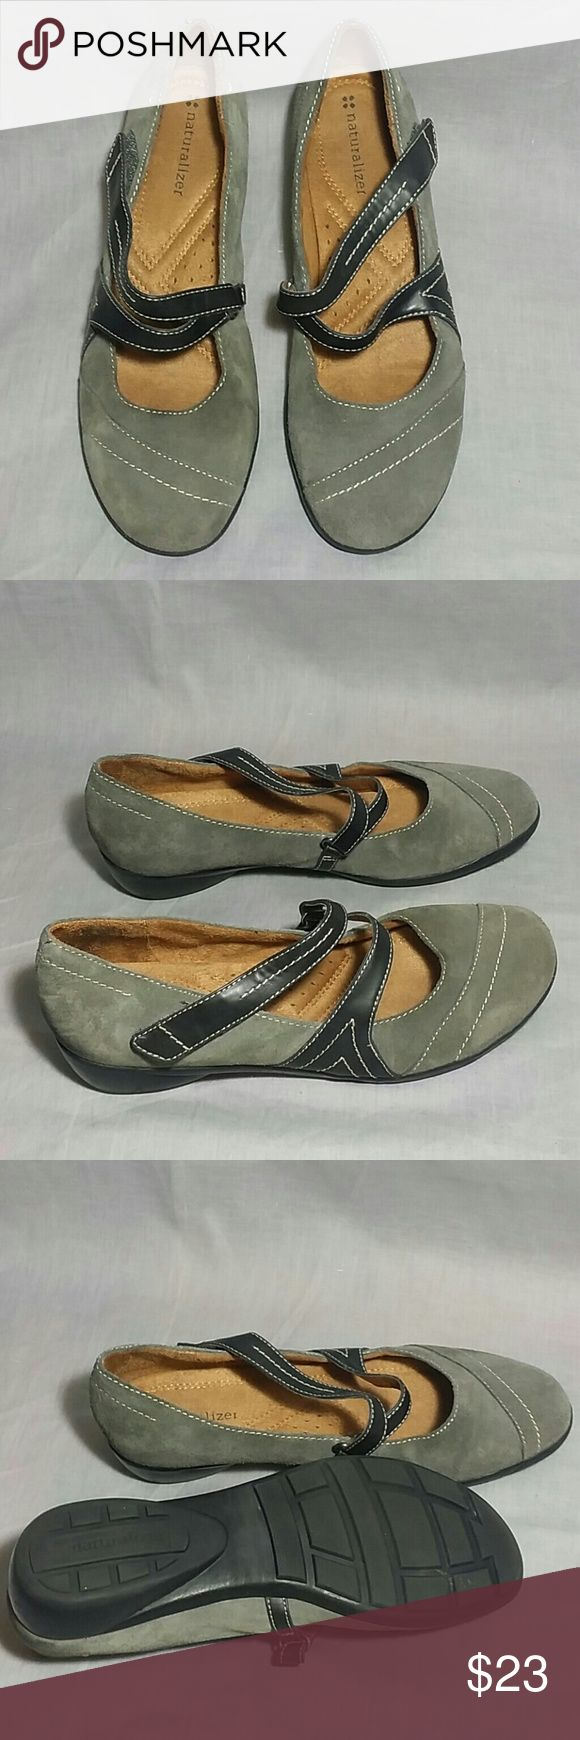 Women's Naturalizer Shoes Gray 7 M Leather Item is in a good condition NO PETS AND SMOKE FREE HOME. Naturalizer  Shoes